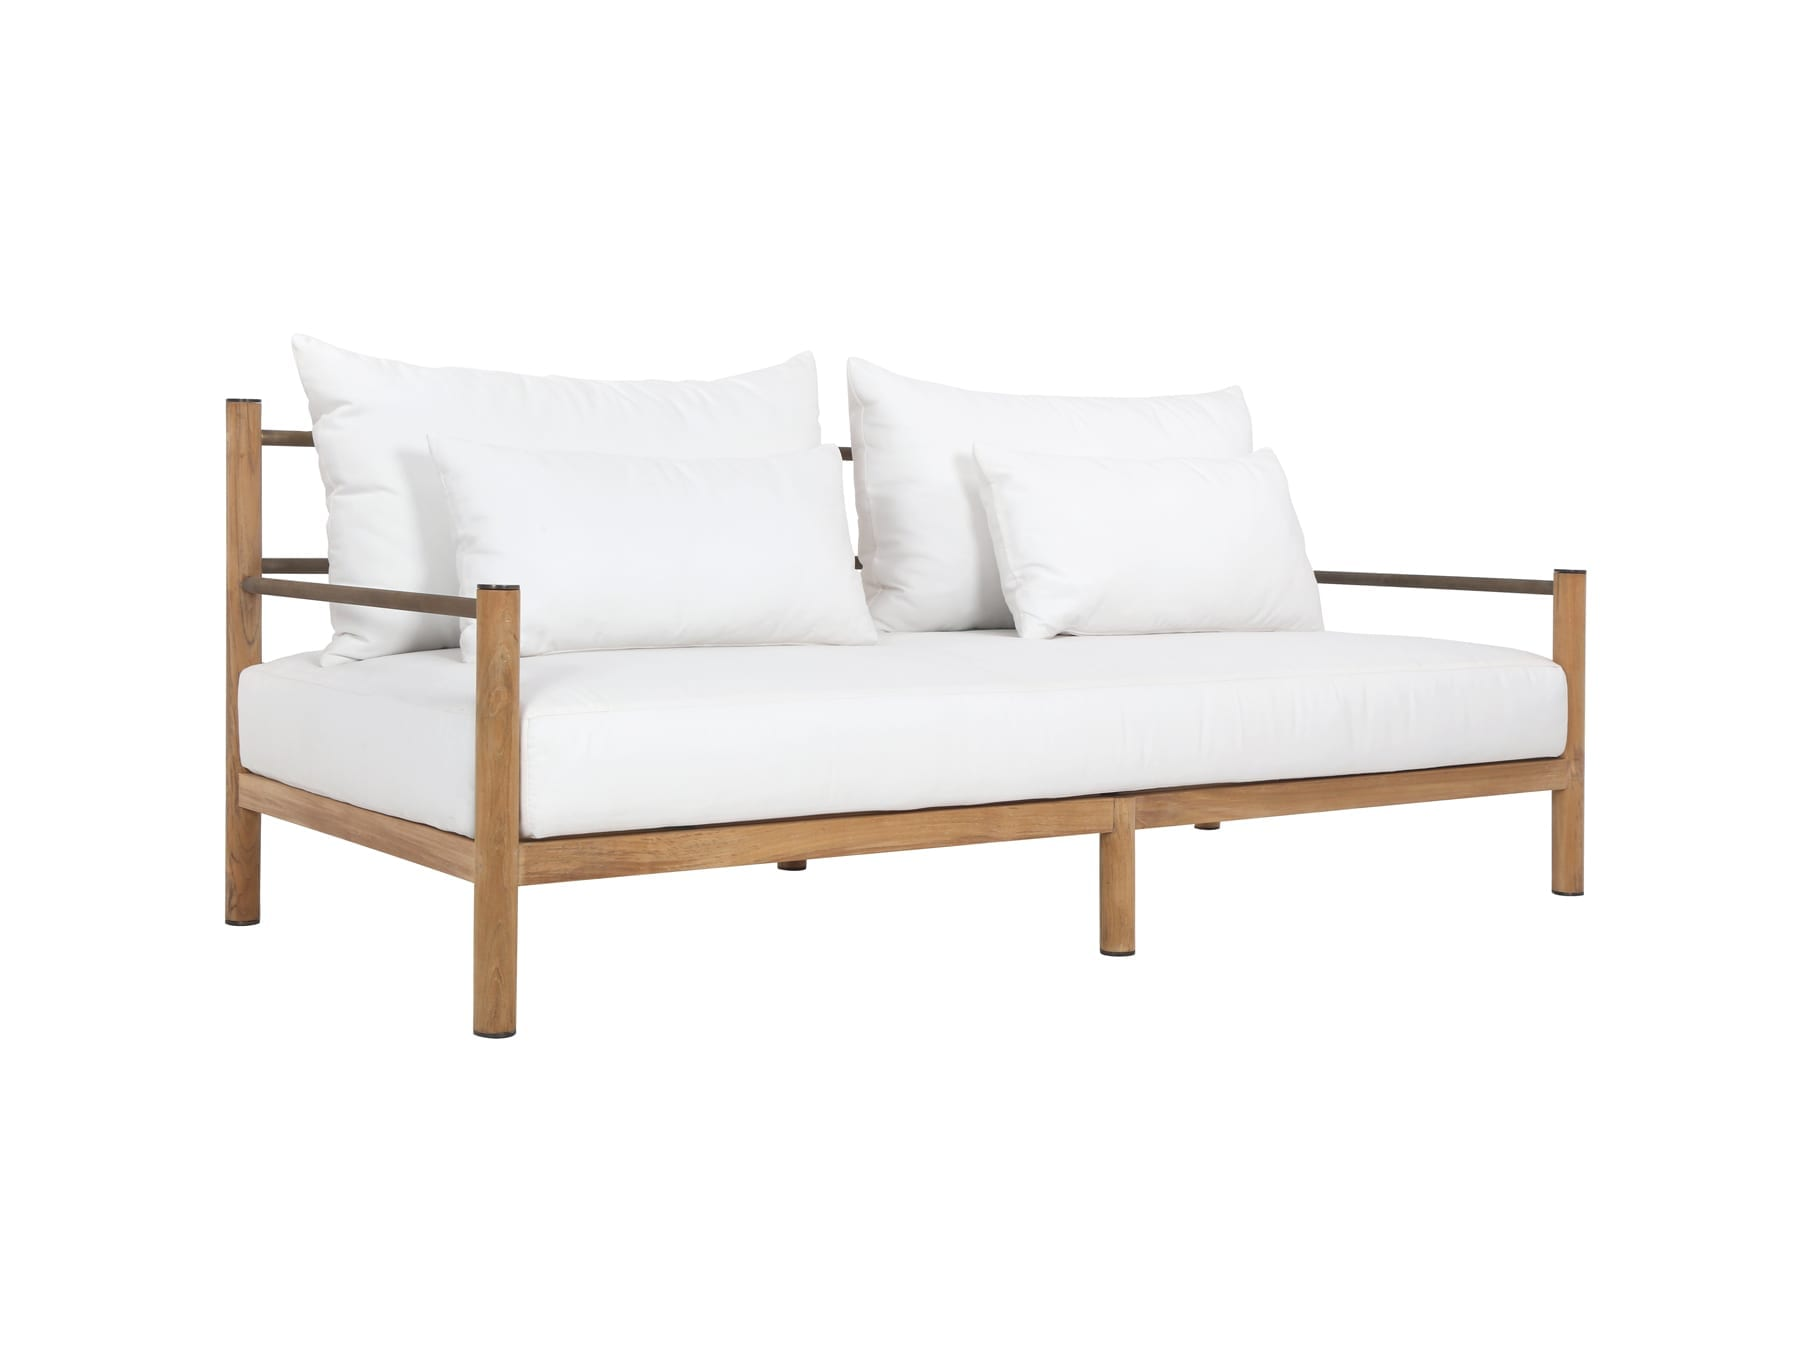 Cove Alexander 3 Seater Sofa available at McKenzie & Willis